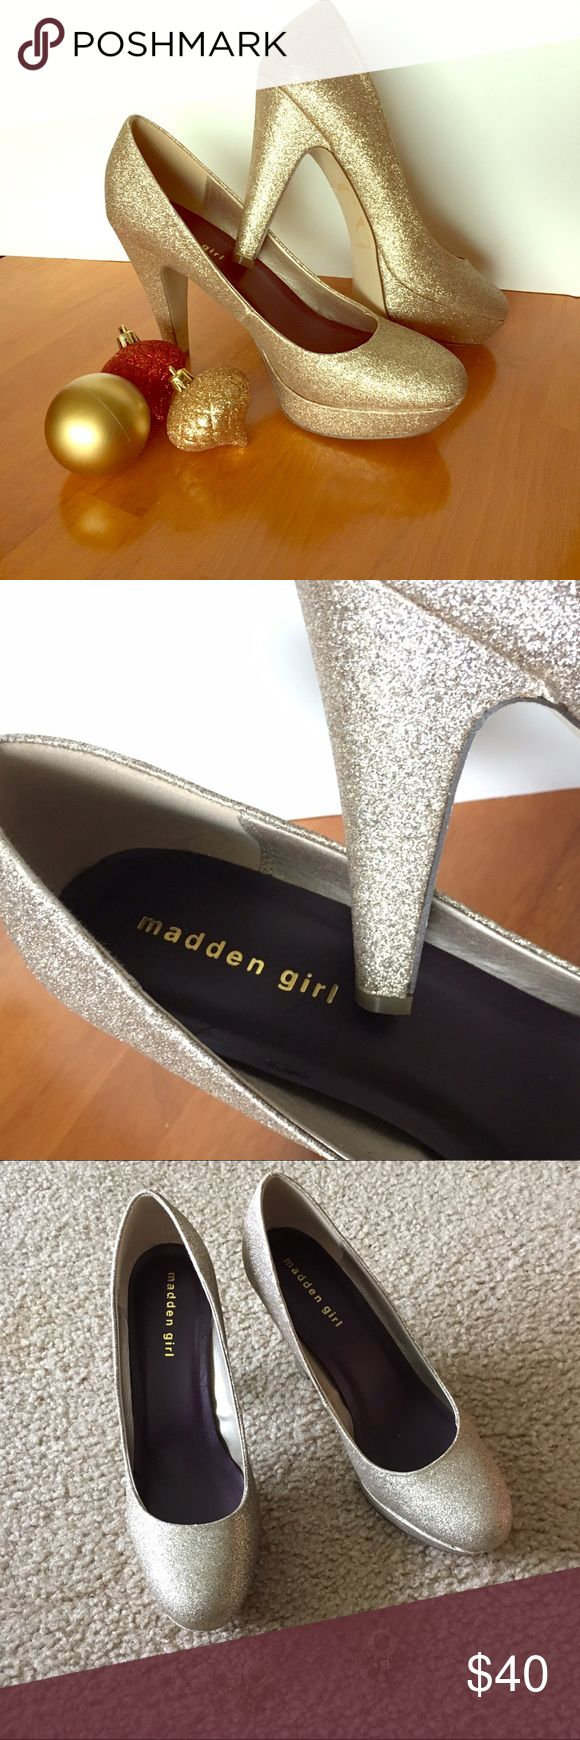 """✨Steve Madden GOLD SPARKLE Platforms✨ Just in time for New Years!✨✨FUN glittery gold pumps with 4.5 inch heel length and 1"""" platform. GREAT for the holidays. RE-POSH (too high for me ☹️). Looks like it was never worn outside.  LIKE NEW! Most minimum wear (if any).  Tip of one shoe did come with the slightest scrap (unrecognizable when worn - see last pic). ❤️these shoes!!!   BUNDLE DISCOUNT AVAILABLE SHIPS SAME OR NEXT DAY!  NO TRADES/NO PAYPAL  SMOKE AND PET FREE HOME  Madden Girl Shoes"""